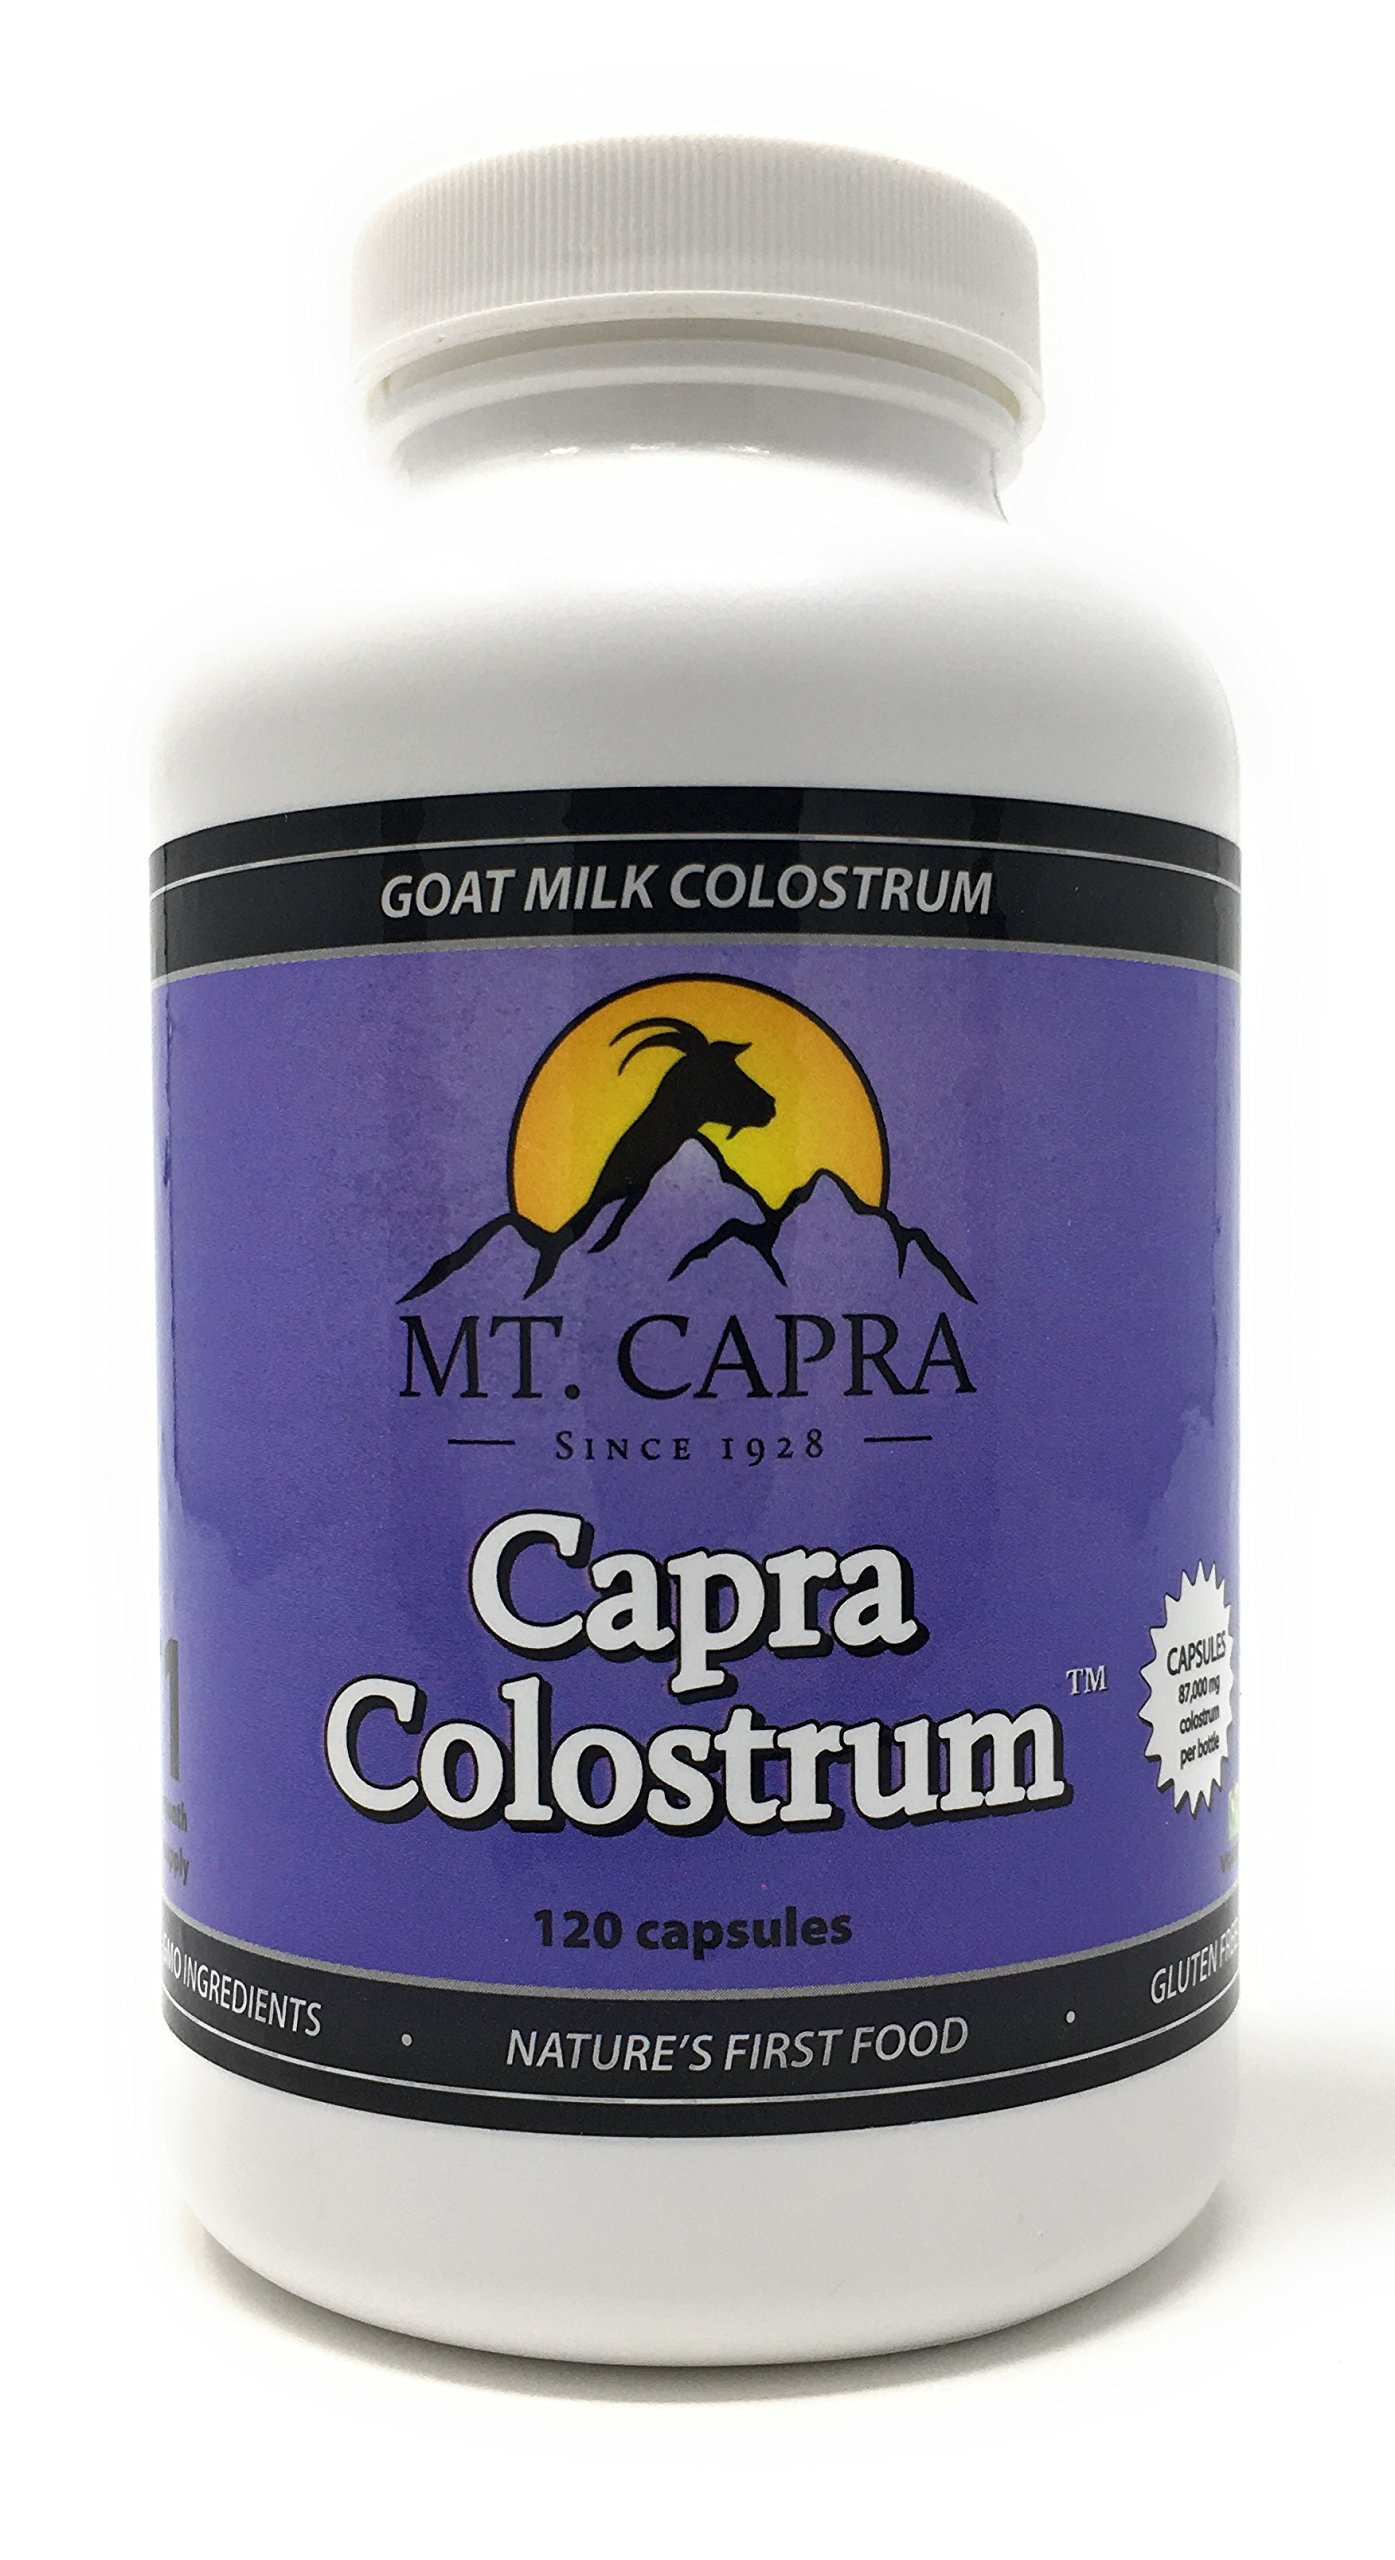 MT. CAPRA SINCE 1928 CapraColostrum | Goat Milk Colostrum for Healthy Immune System, Gut, and Athletic Performance, Grass-Fed, High in Immunoglobulins - 120 Capsules (2900 mg per Serving) by MT. CAPRA SINCE 1928